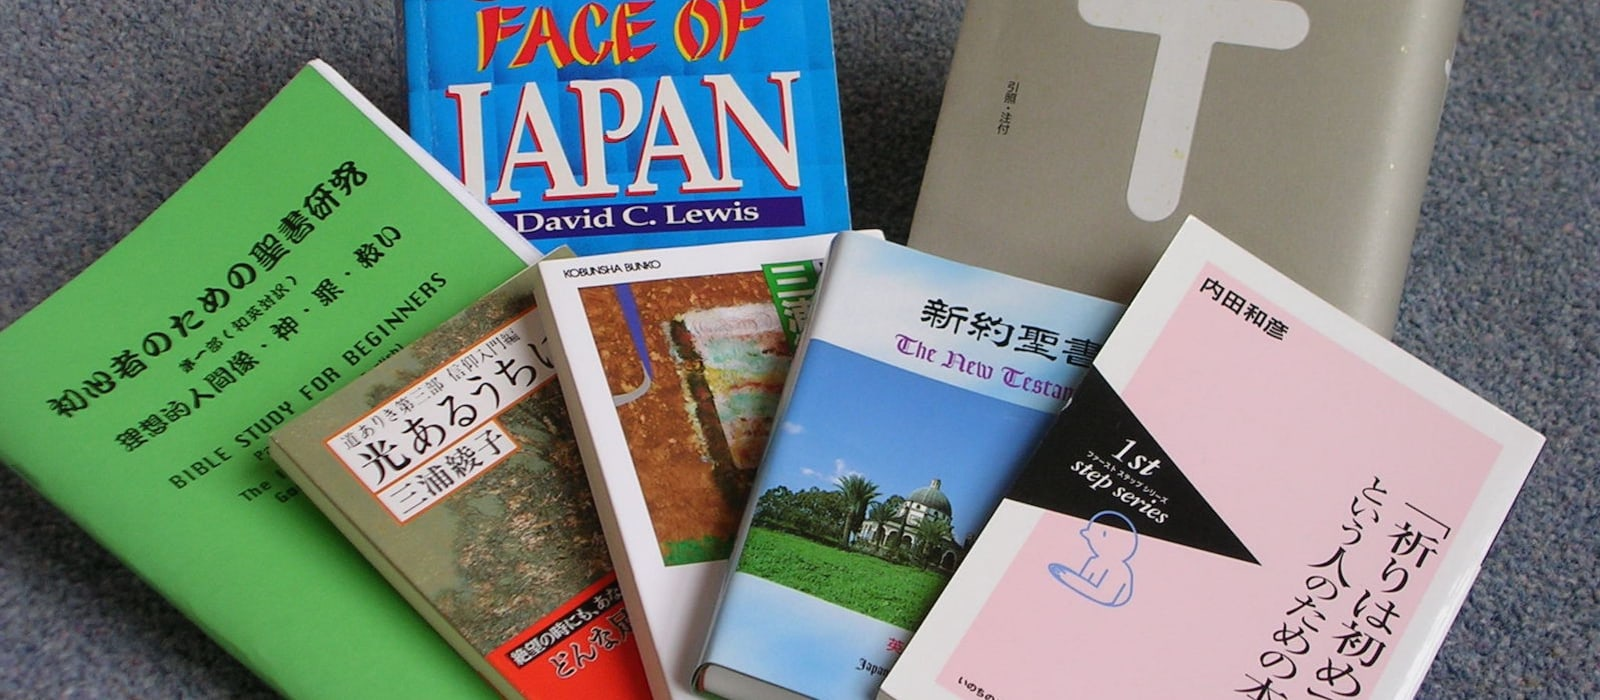 Japanese language materials